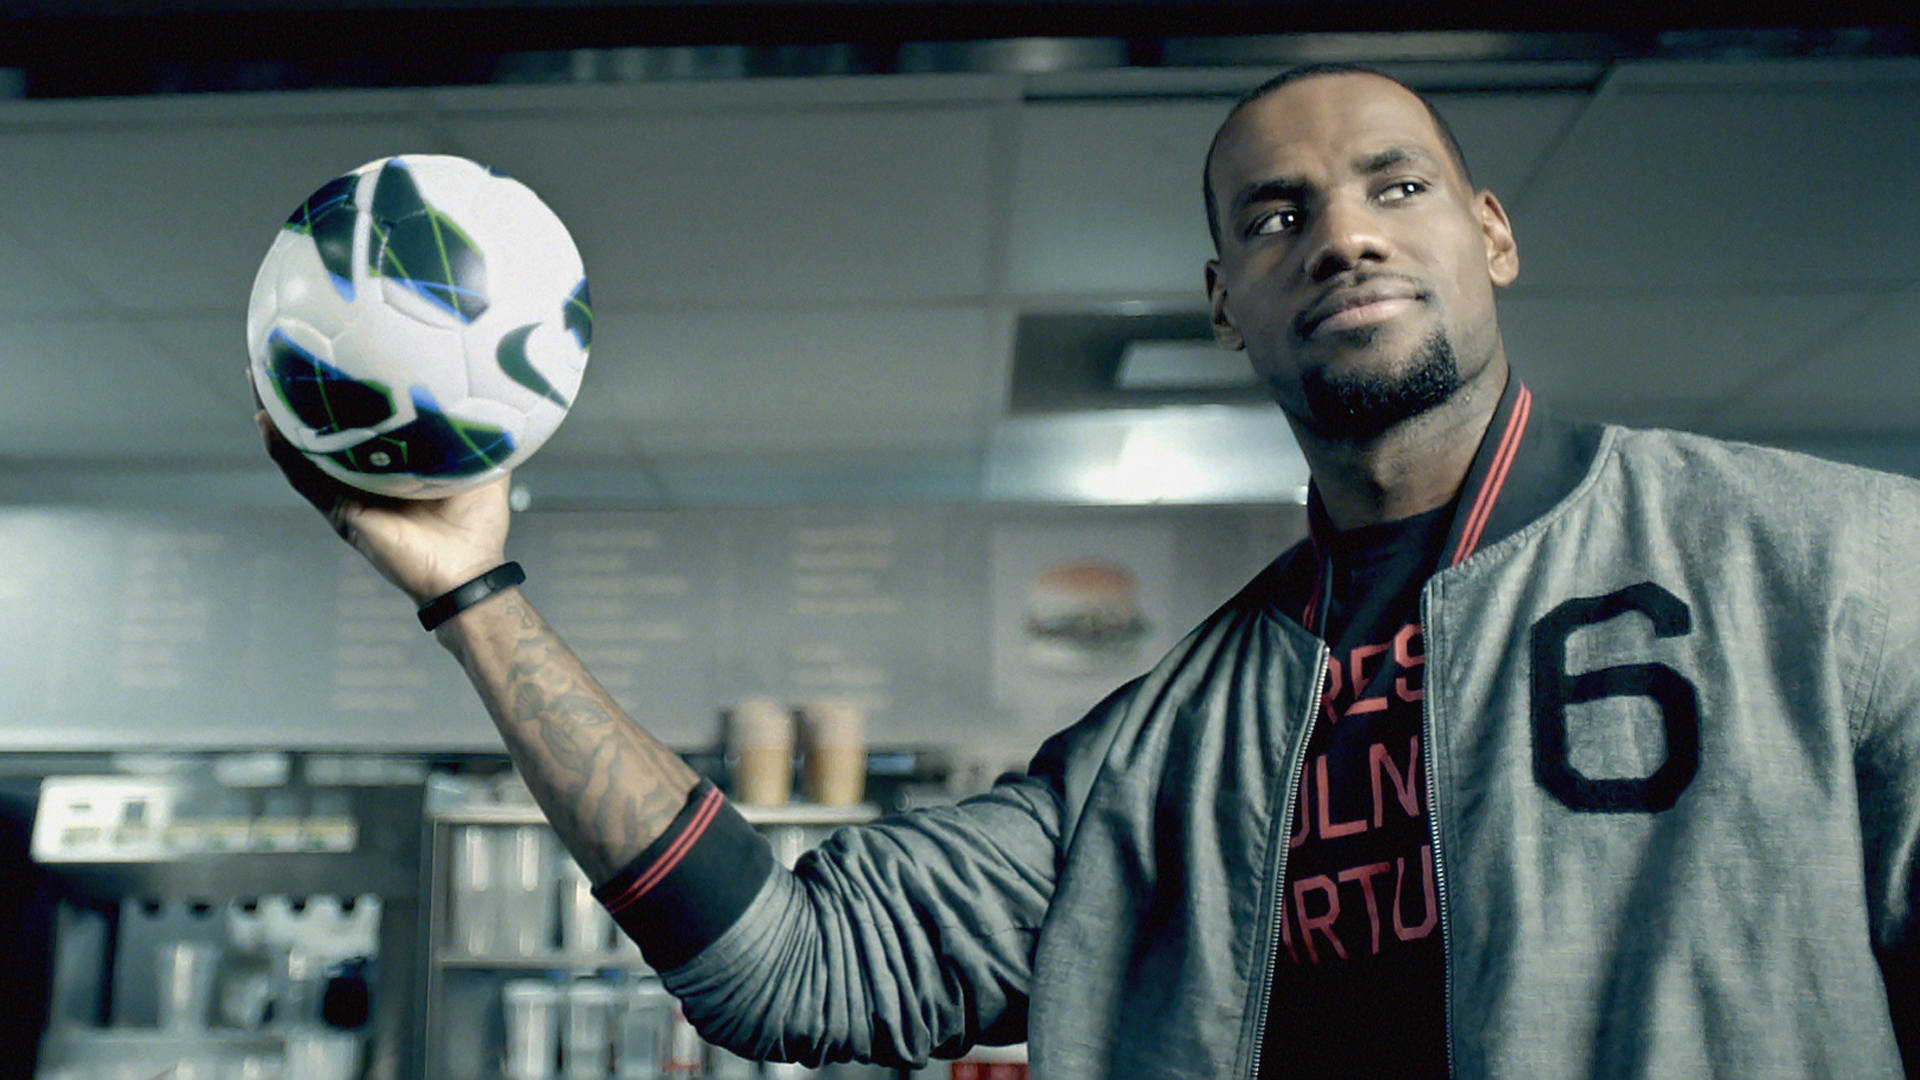 A still from a Nike video about their recycled polyester jerseys